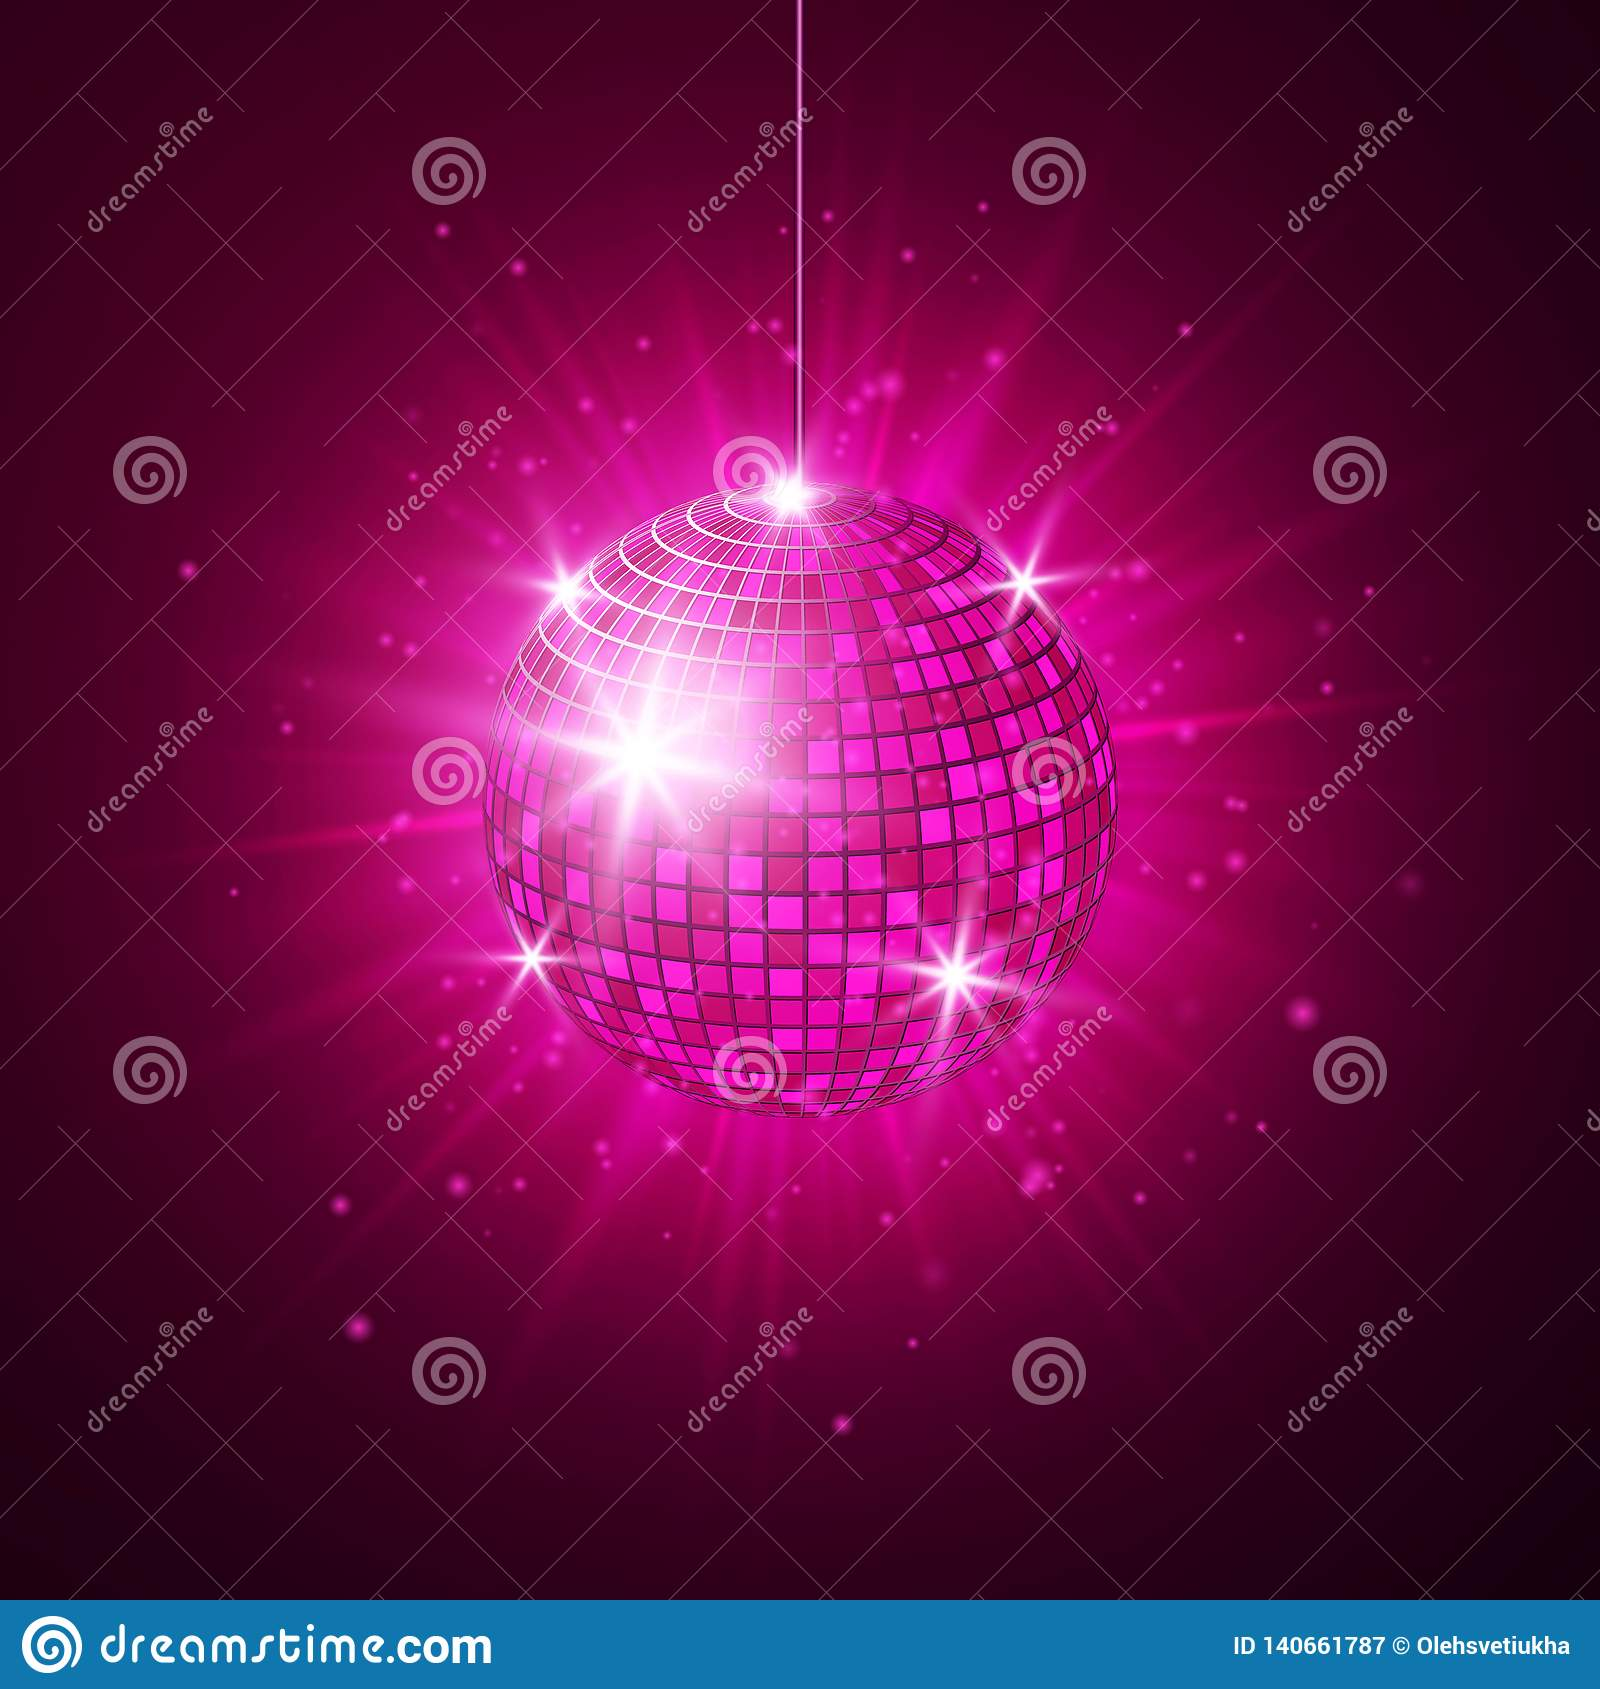 Disco Or Mirror Ball With Bright Rays Music And Dance Night Party